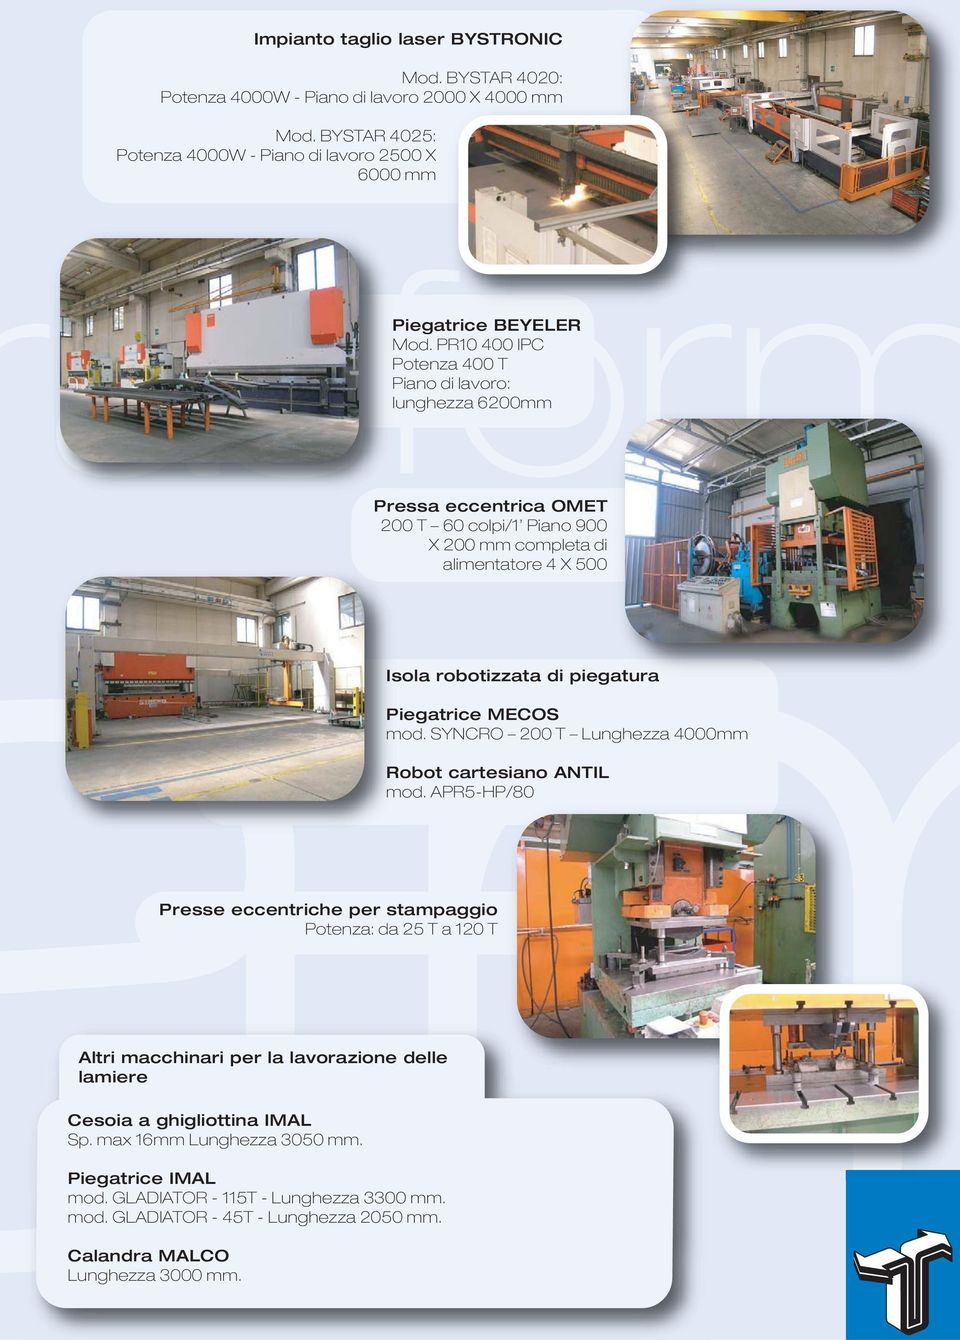 Piegatrice MECOS mod. SYNCRO 200 T Lunghezza 4000mm Robot cartesiano ANTIL mod.